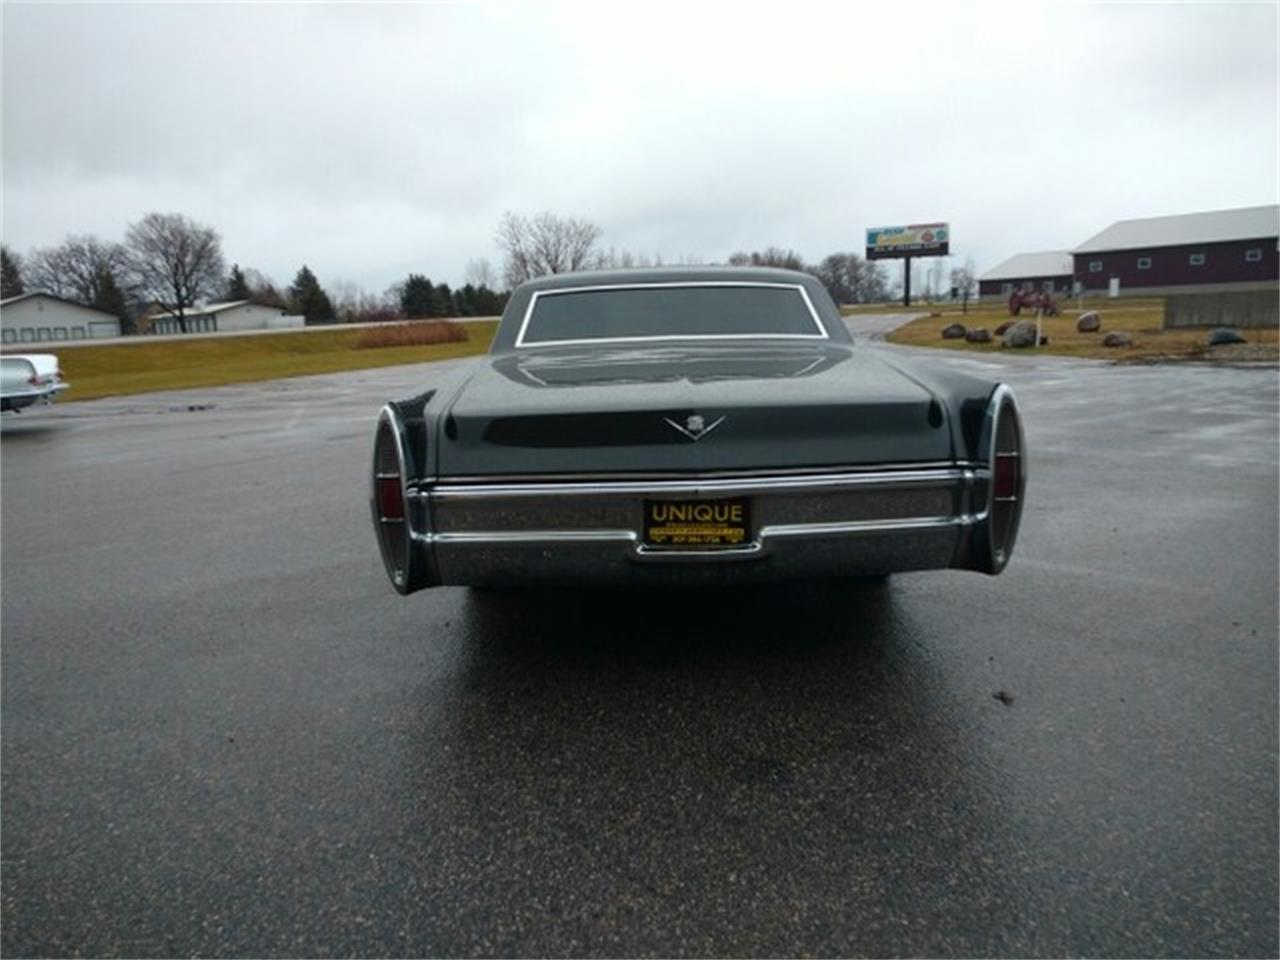 Mankato Car Dealers >> 1968 Cadillac Coupe DeVille for Sale | ClassicCars.com ...